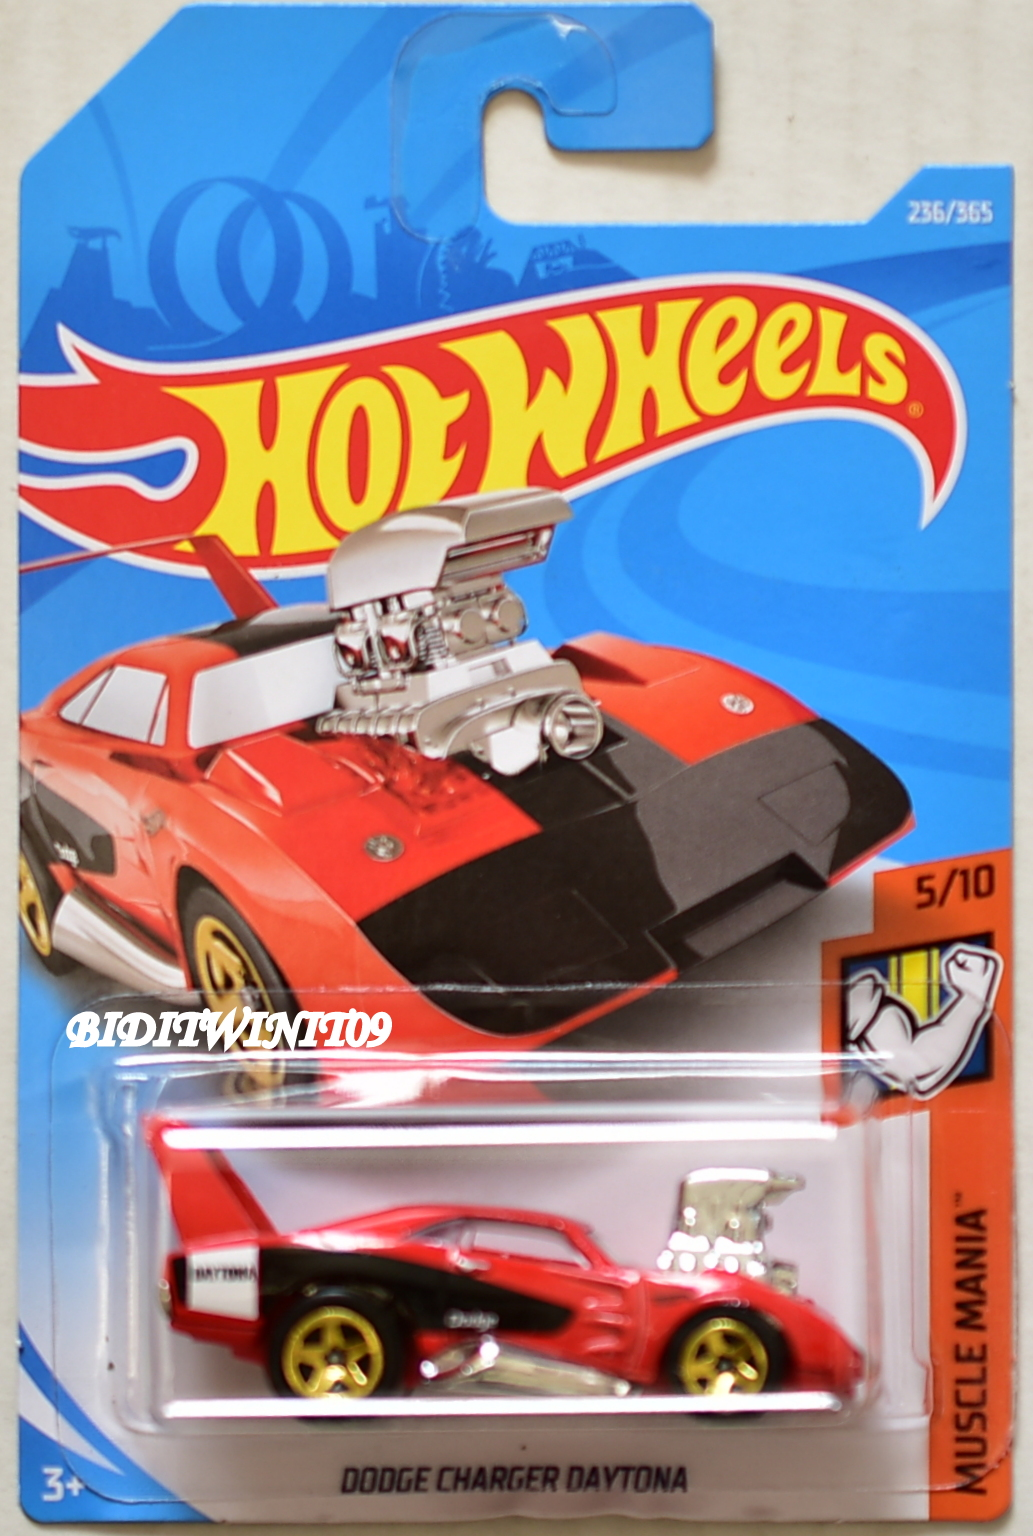 HOT WHEELS 2018 MUSCLE MANIA DODGE CHARGER DAYTONA #5/10 RED